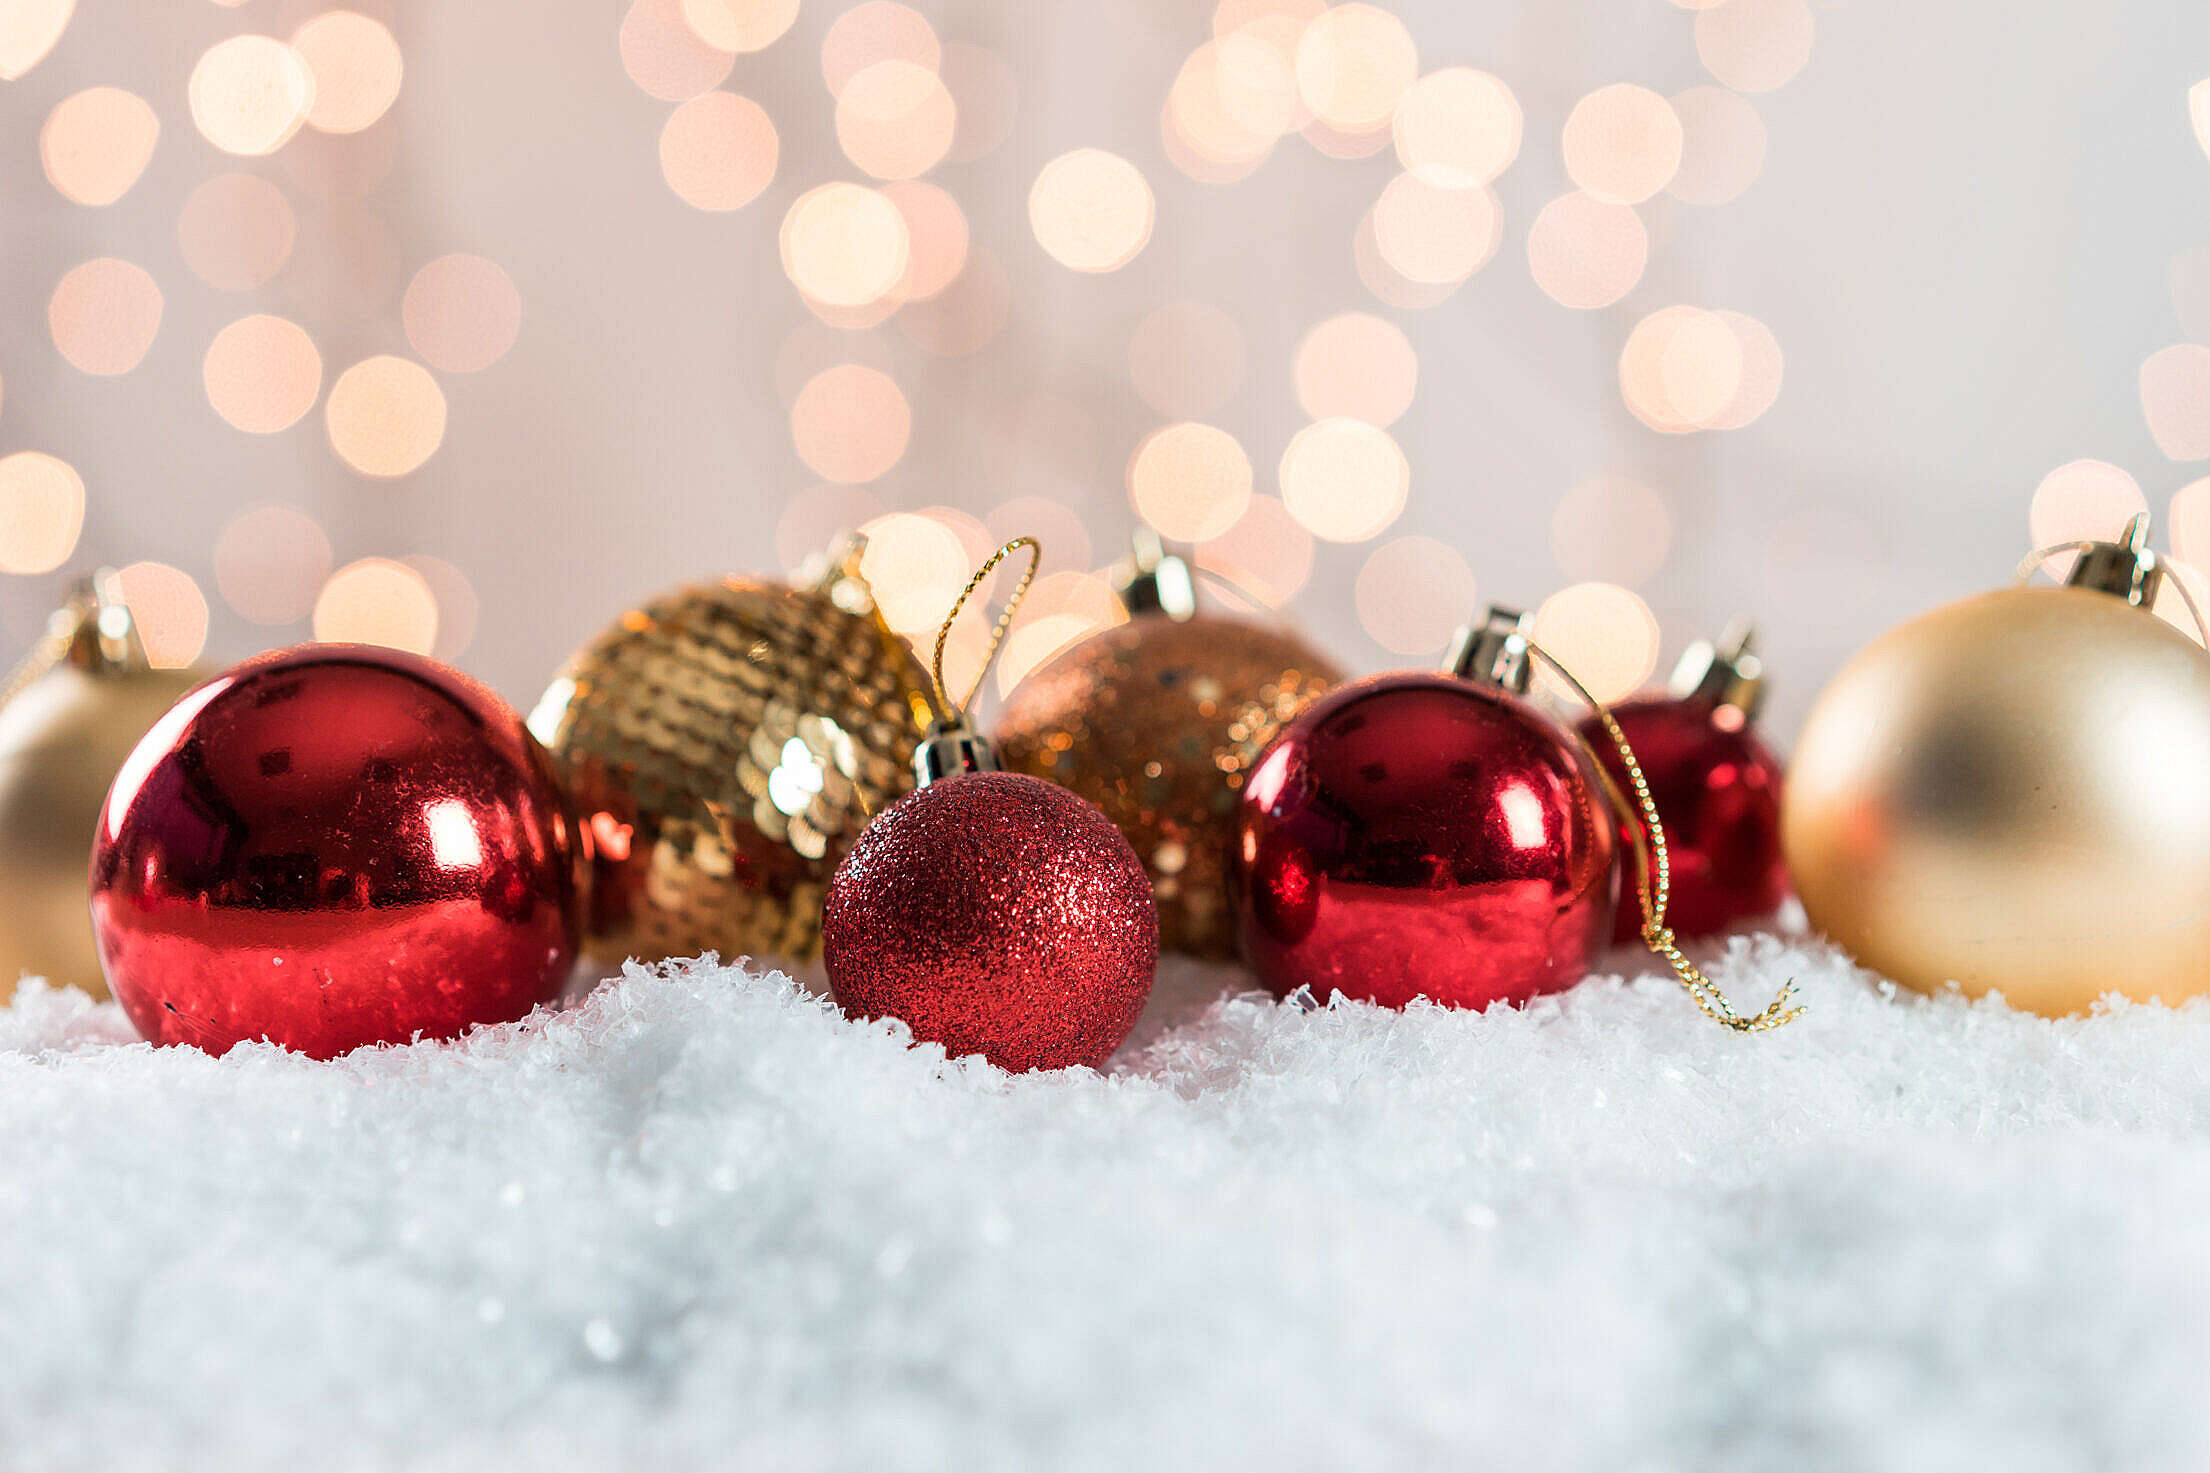 Christmas Tree Decorations with Lovely Bokeh Free Stock Photo